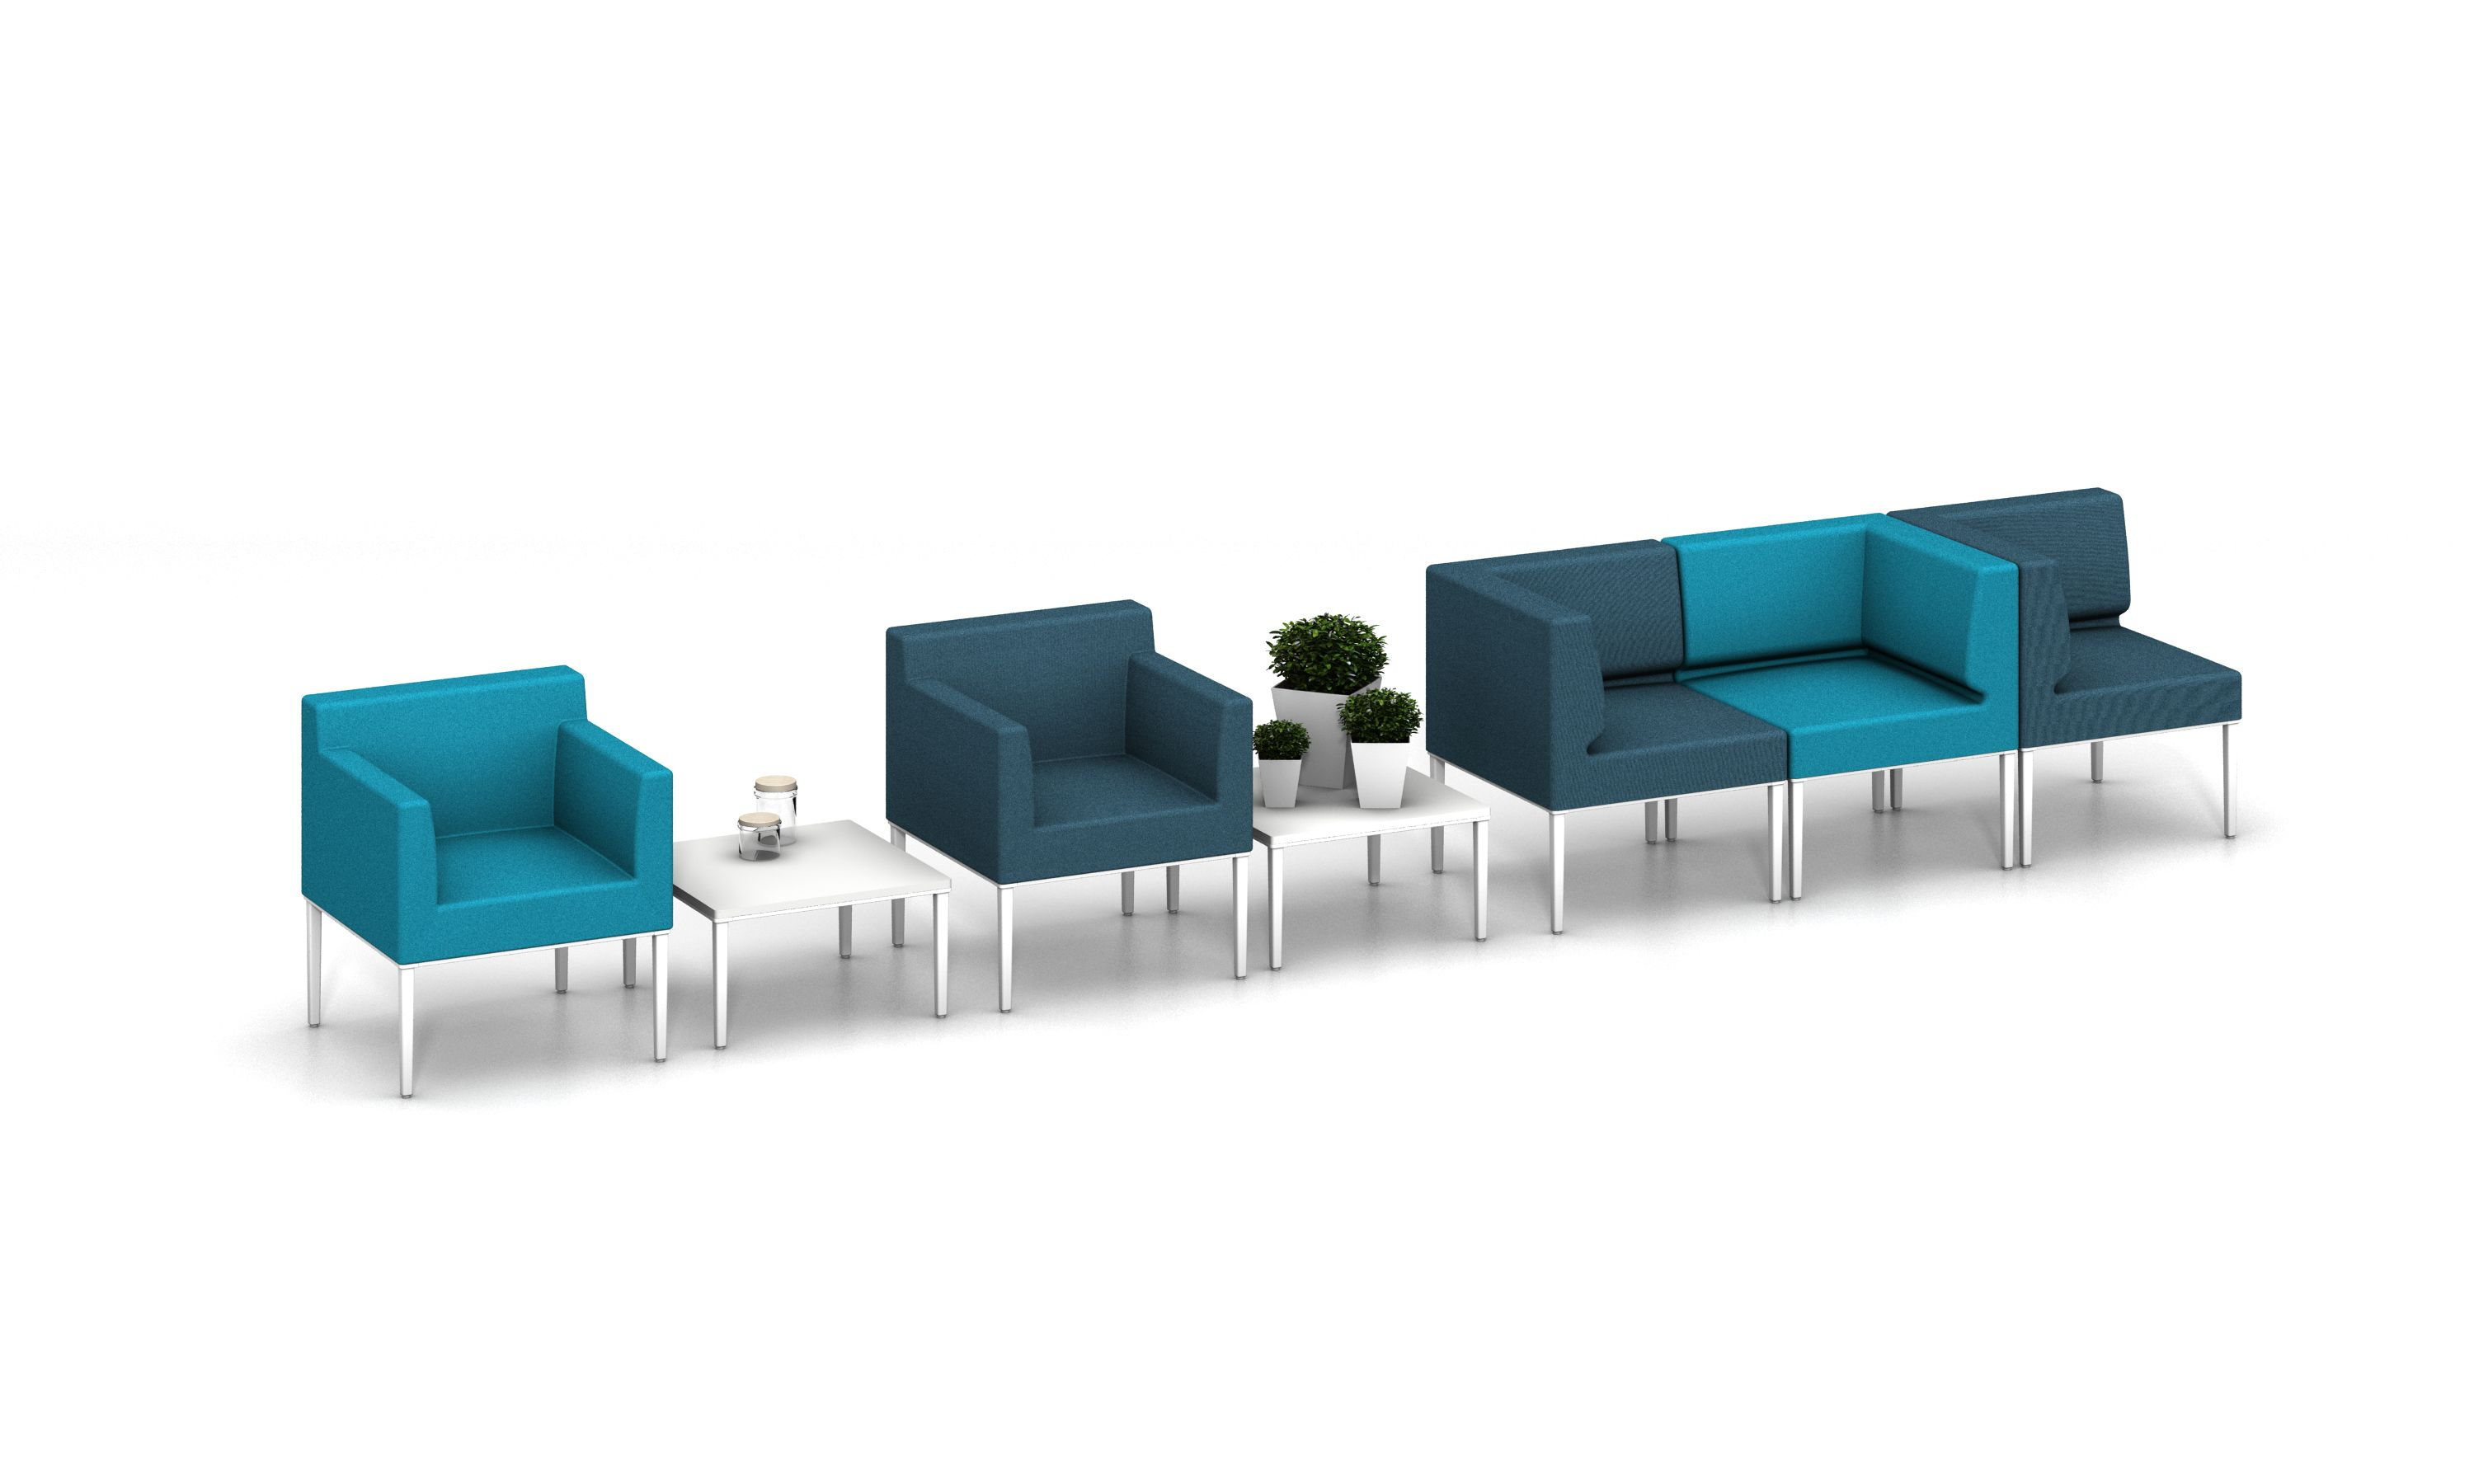 ACTIU LONGO NOMADA soft seating collection by Ramos & Bassols